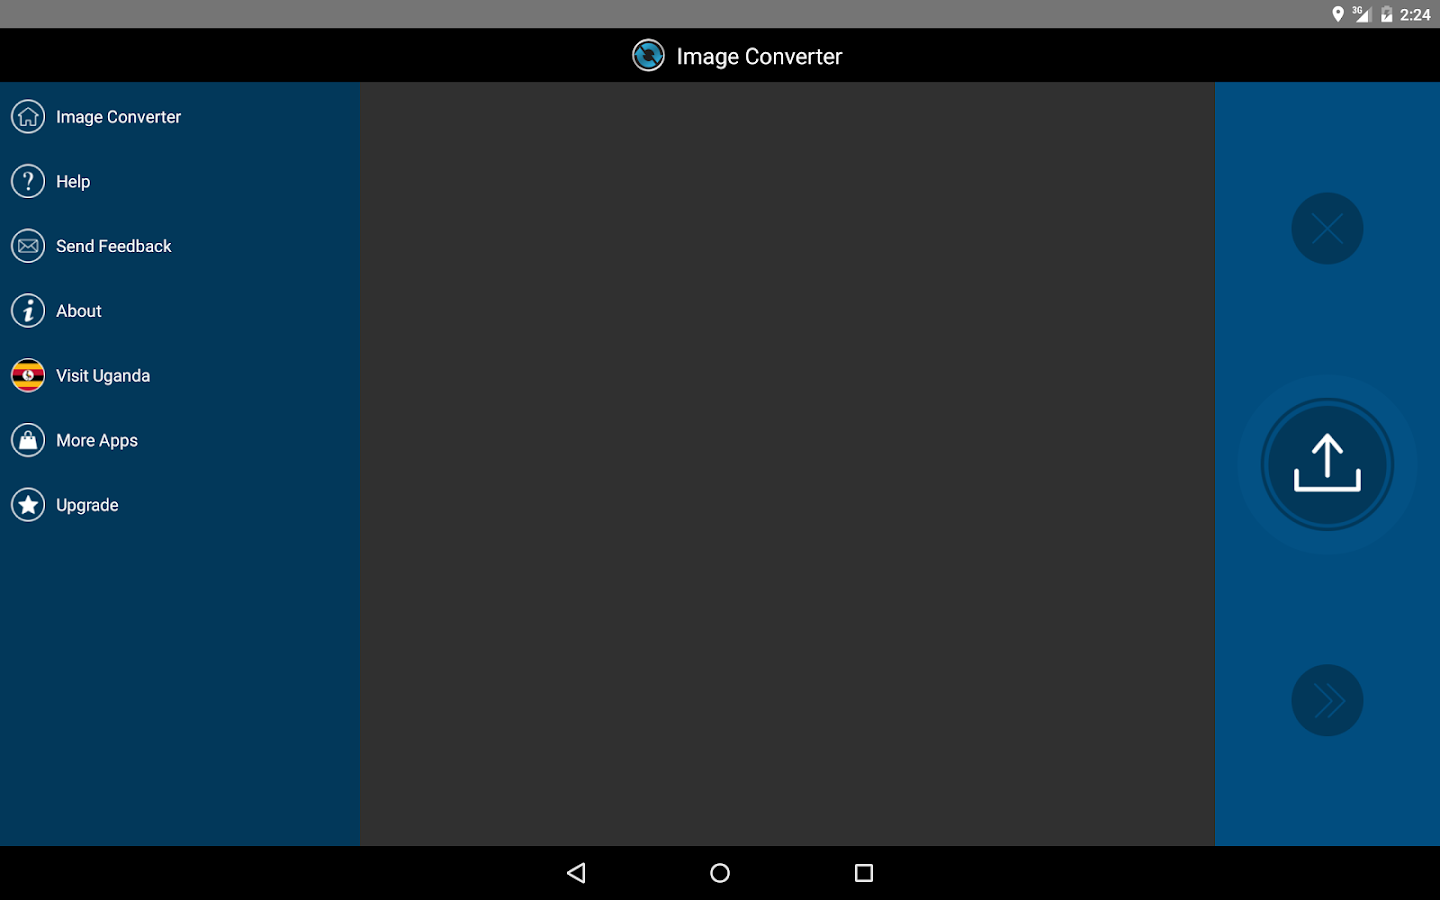 Image Converter Screenshot 9